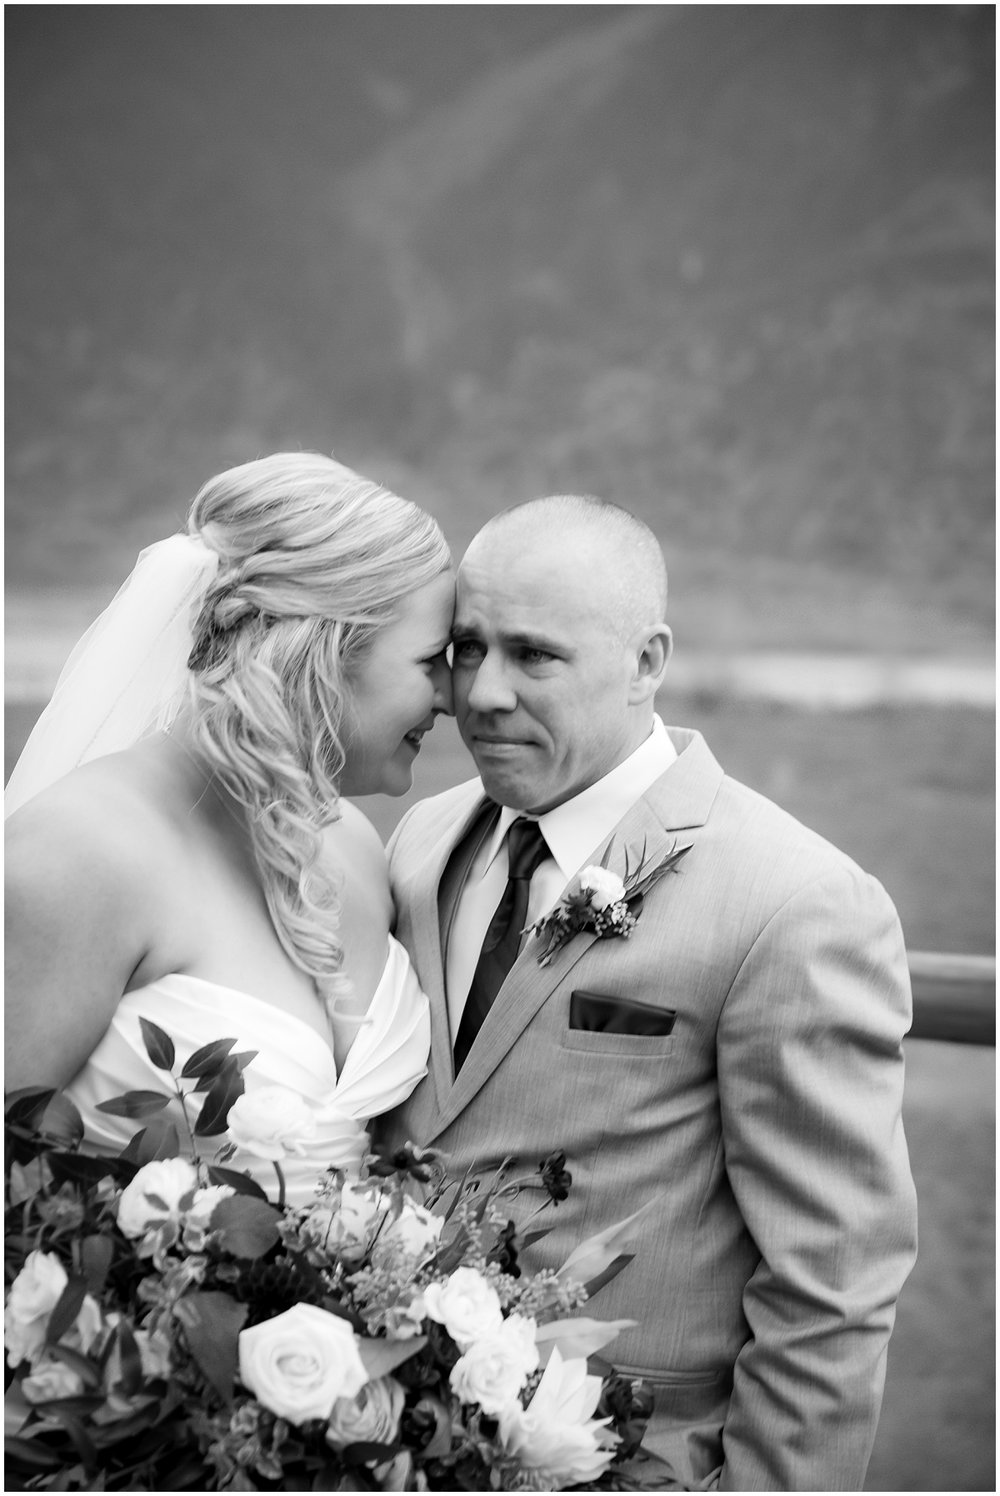 Amazing Day Photography - Fraser River Lodge Wedding - Fall Wedding - Fraser Valley Wedding Photographer - Langley Wedding Photographer (29).jpg